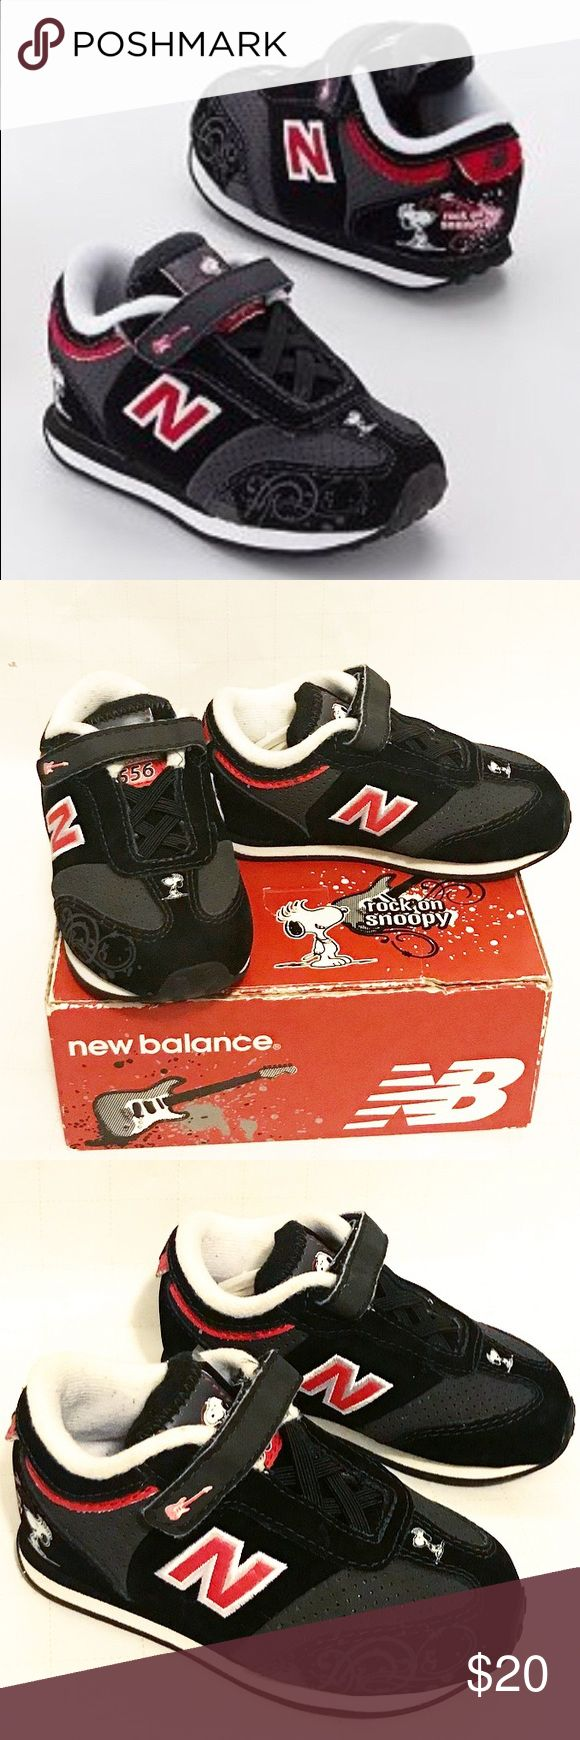 New Balance Peanuts Snoopy Sneakers New Balance Rock On Snoopy Sneakers. Has a Velcro strap, No lacing required. Toddler size 6 Wide. New Balance Shoes Sneakers